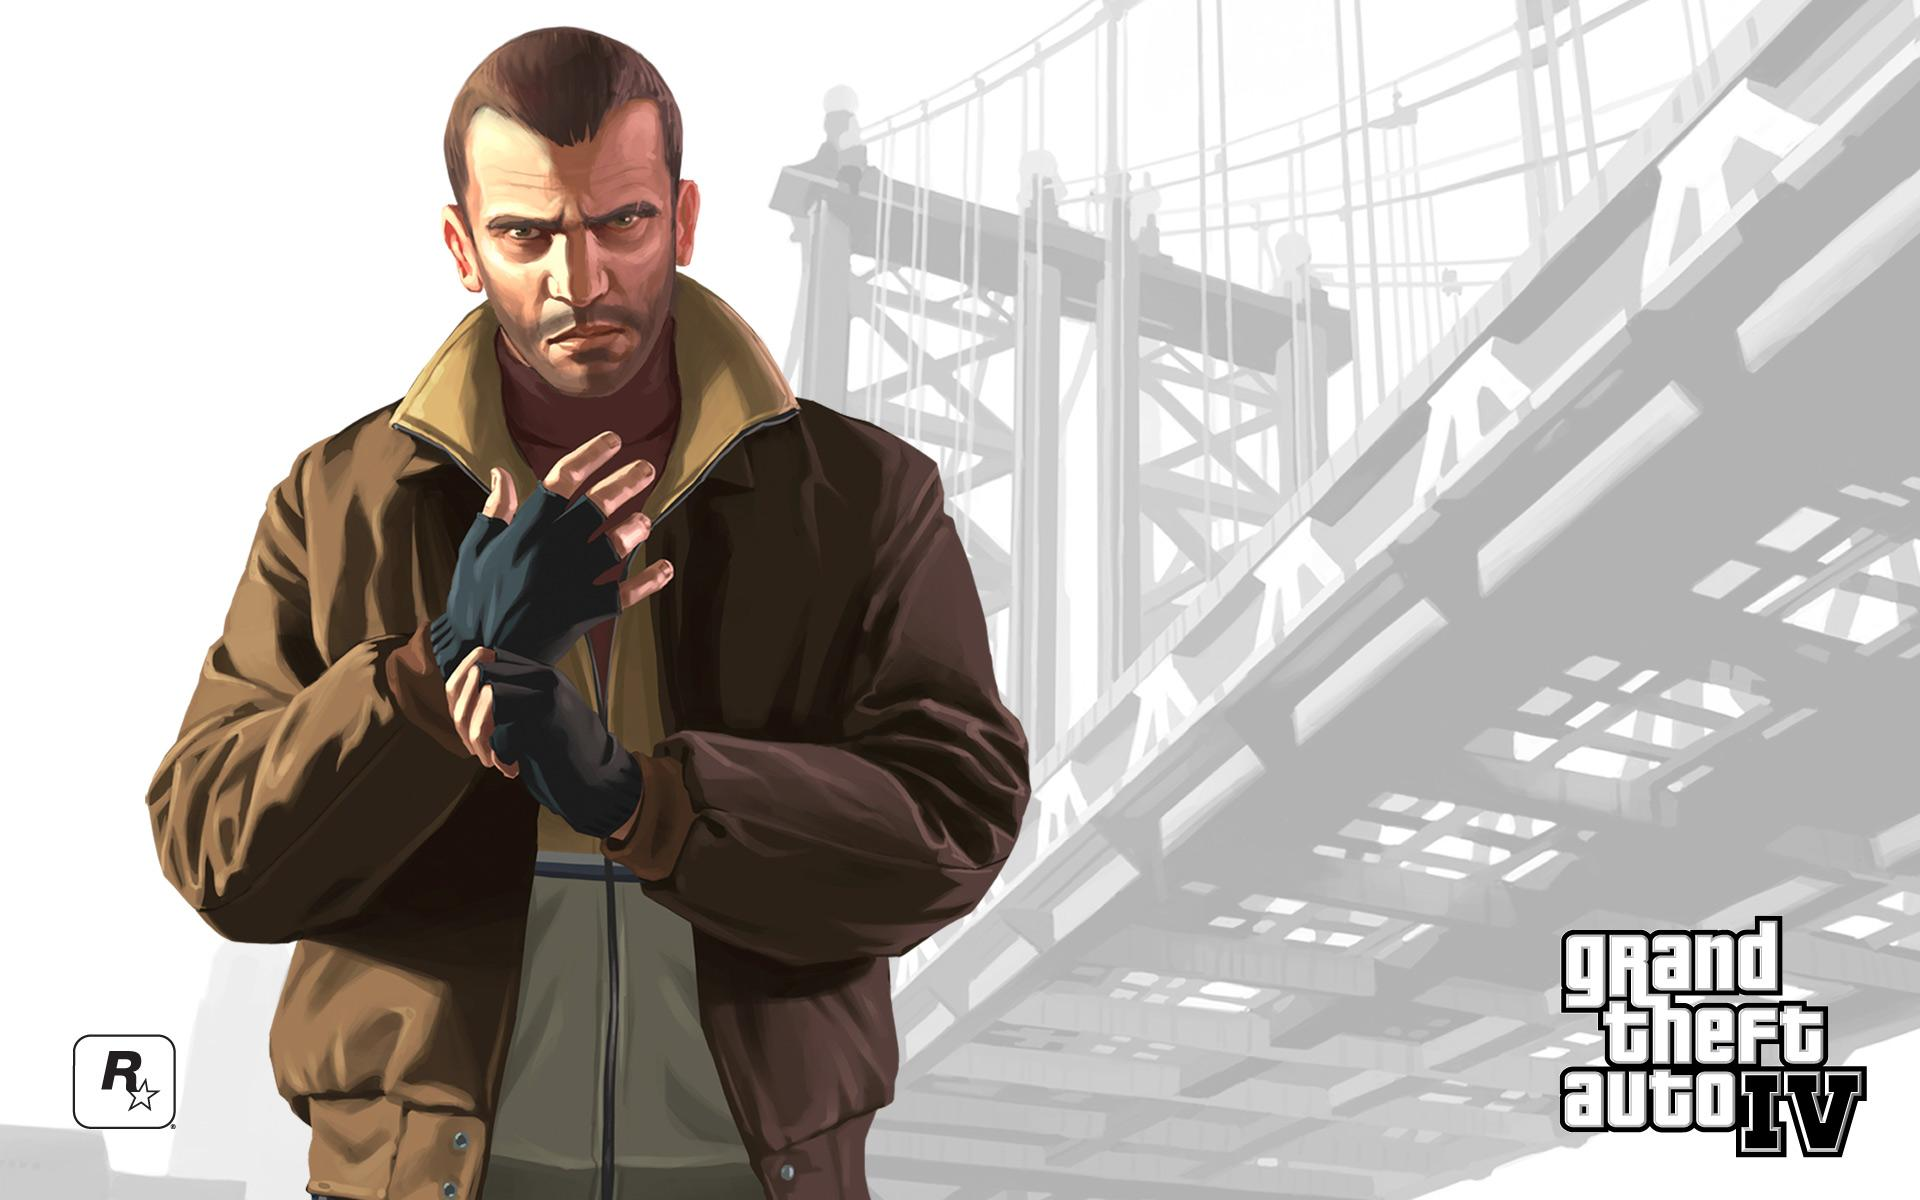 Niko Grand Theft Auto IV Wallpapers HD Wallpapers 1920x1200